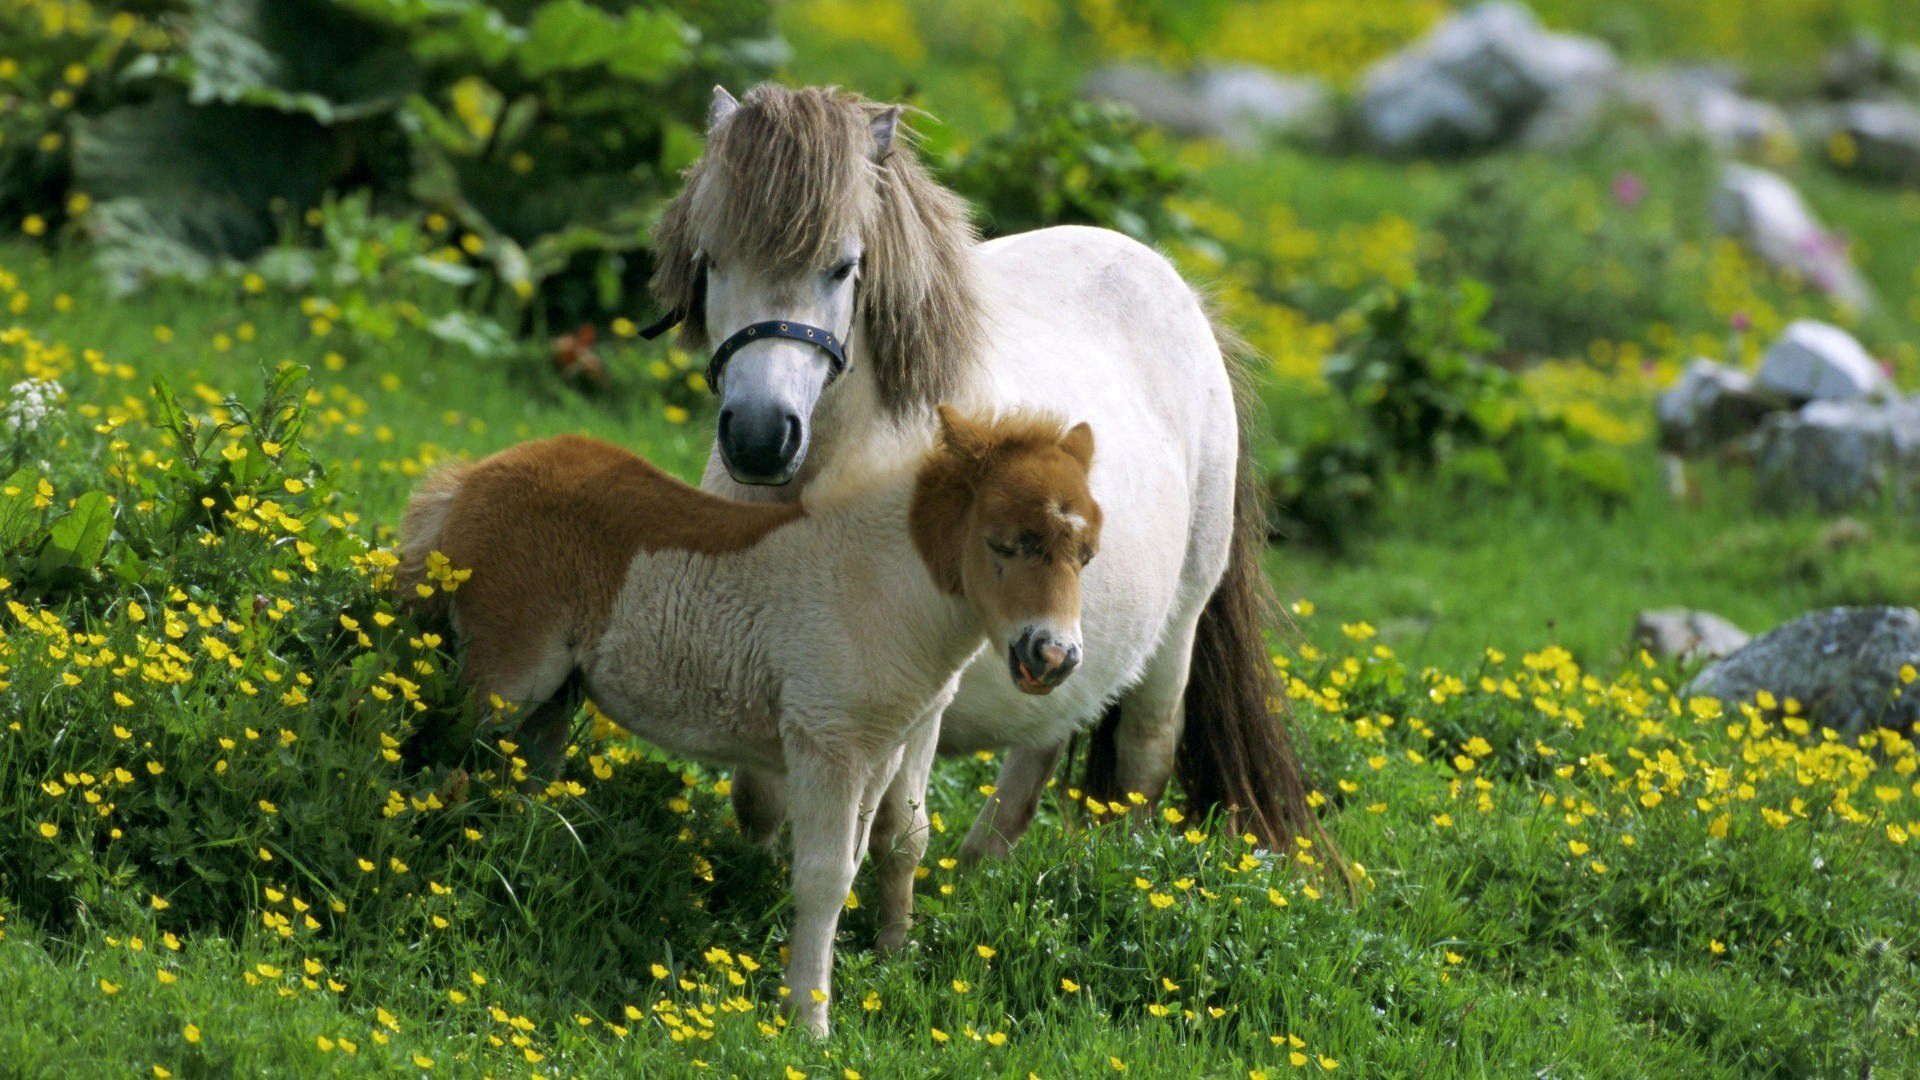 Hd Animals Wallpapers Free: Farm Animals Wallpapers Backgrounds